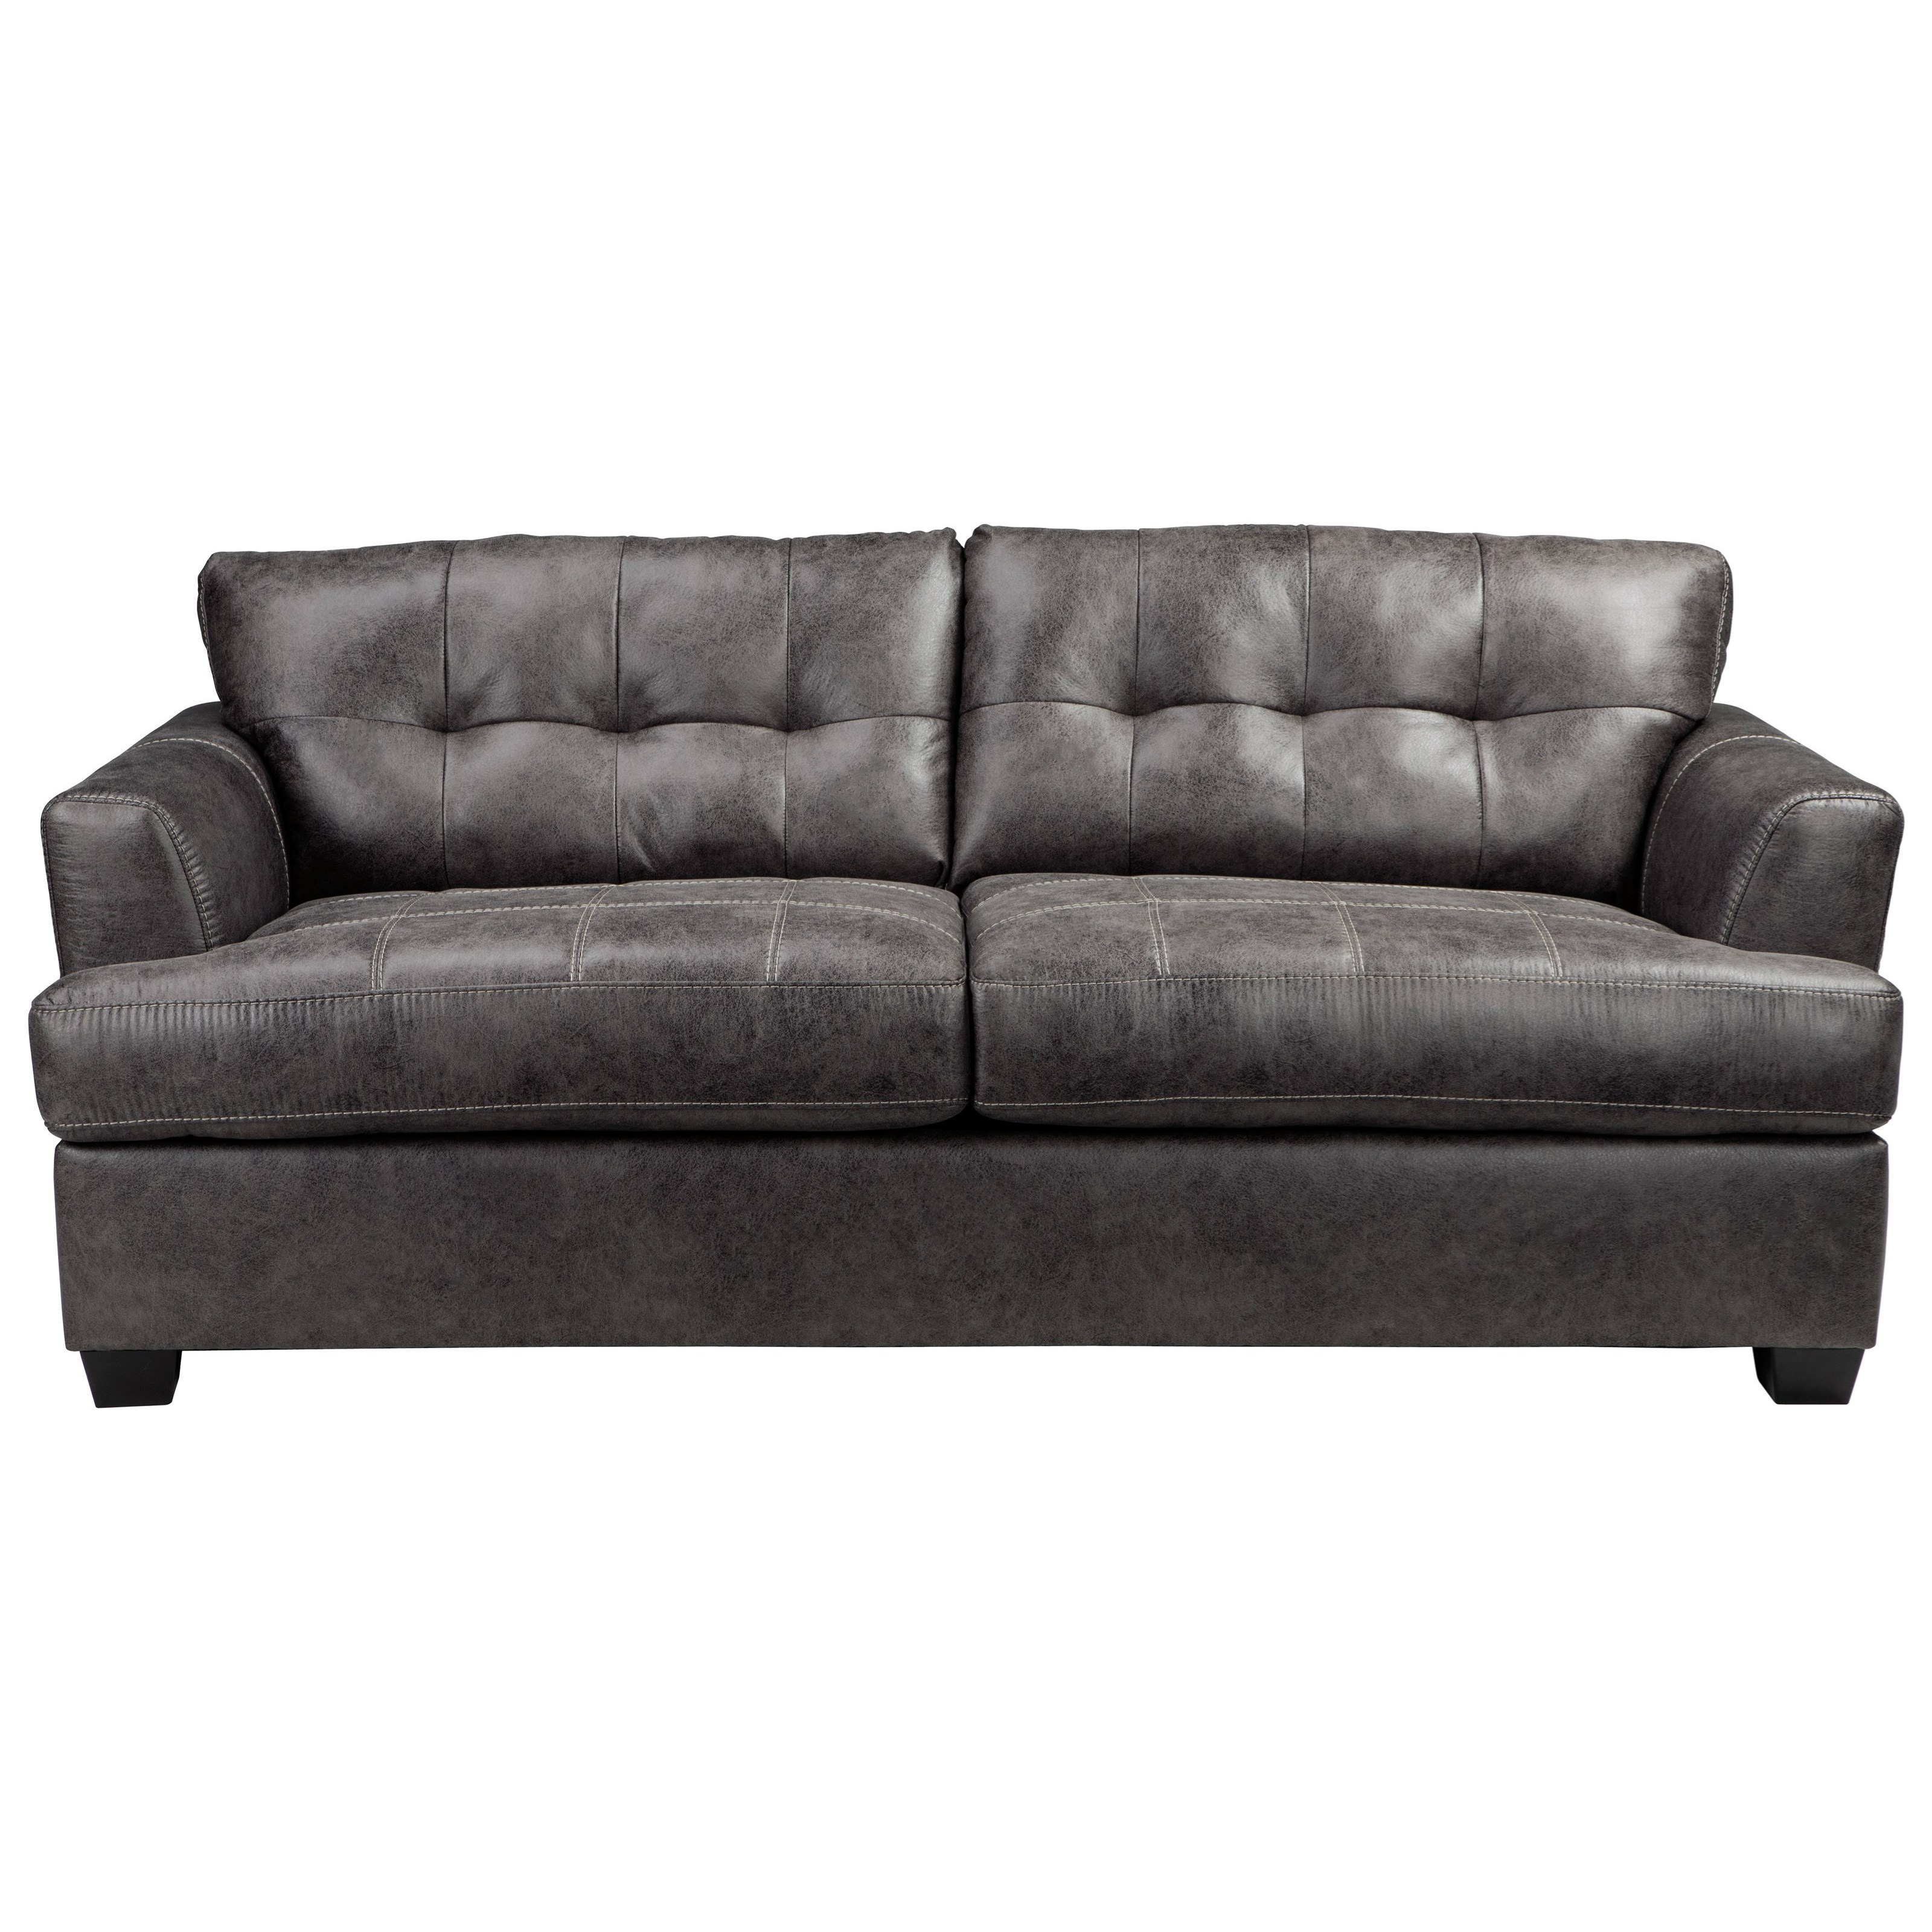 Benchcraft Inmon Queen Sofa Sleeper - Item Number: 6580739